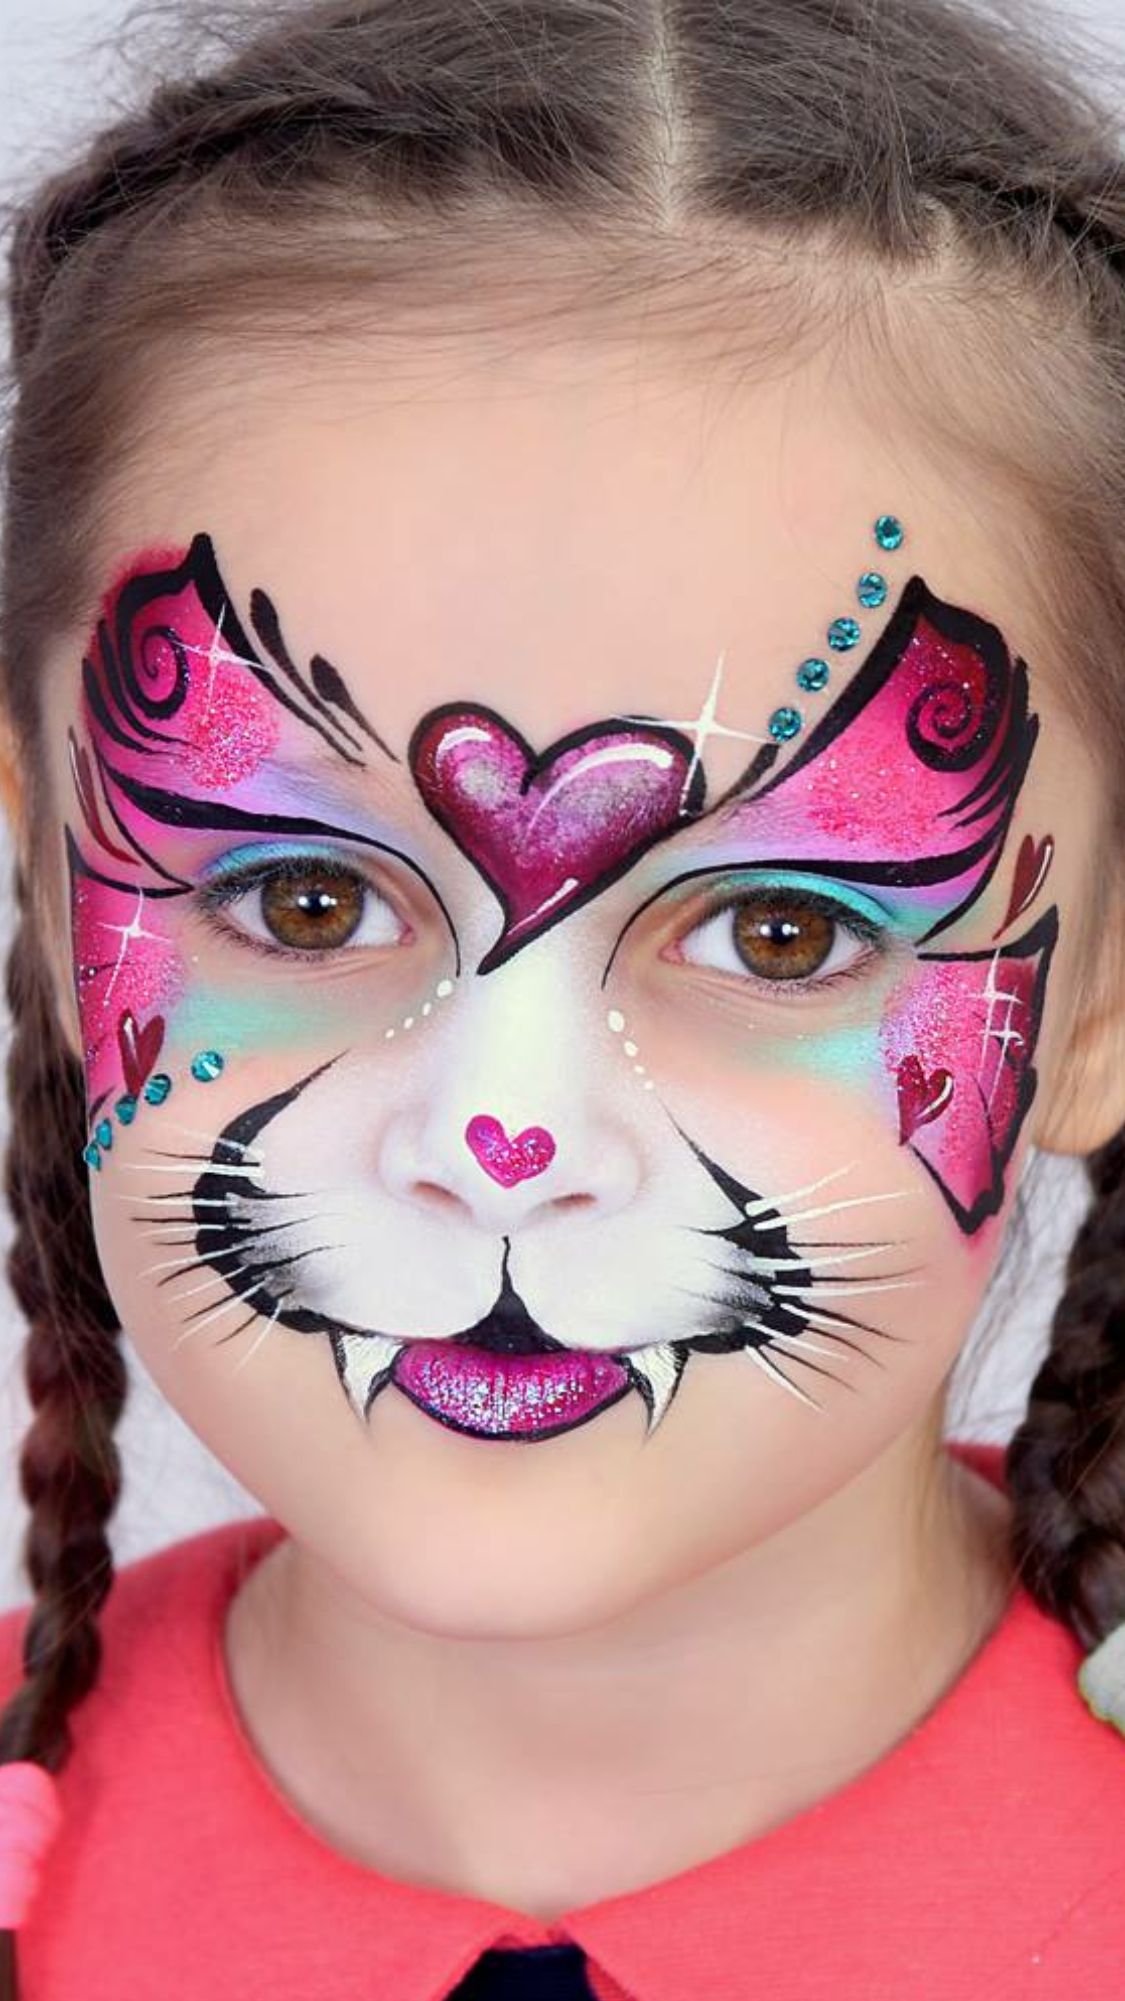 Pin By Stephanie Maldonado On Complex In 2020 Kids Face Paint Kitty Face Paint Face Painting Halloween